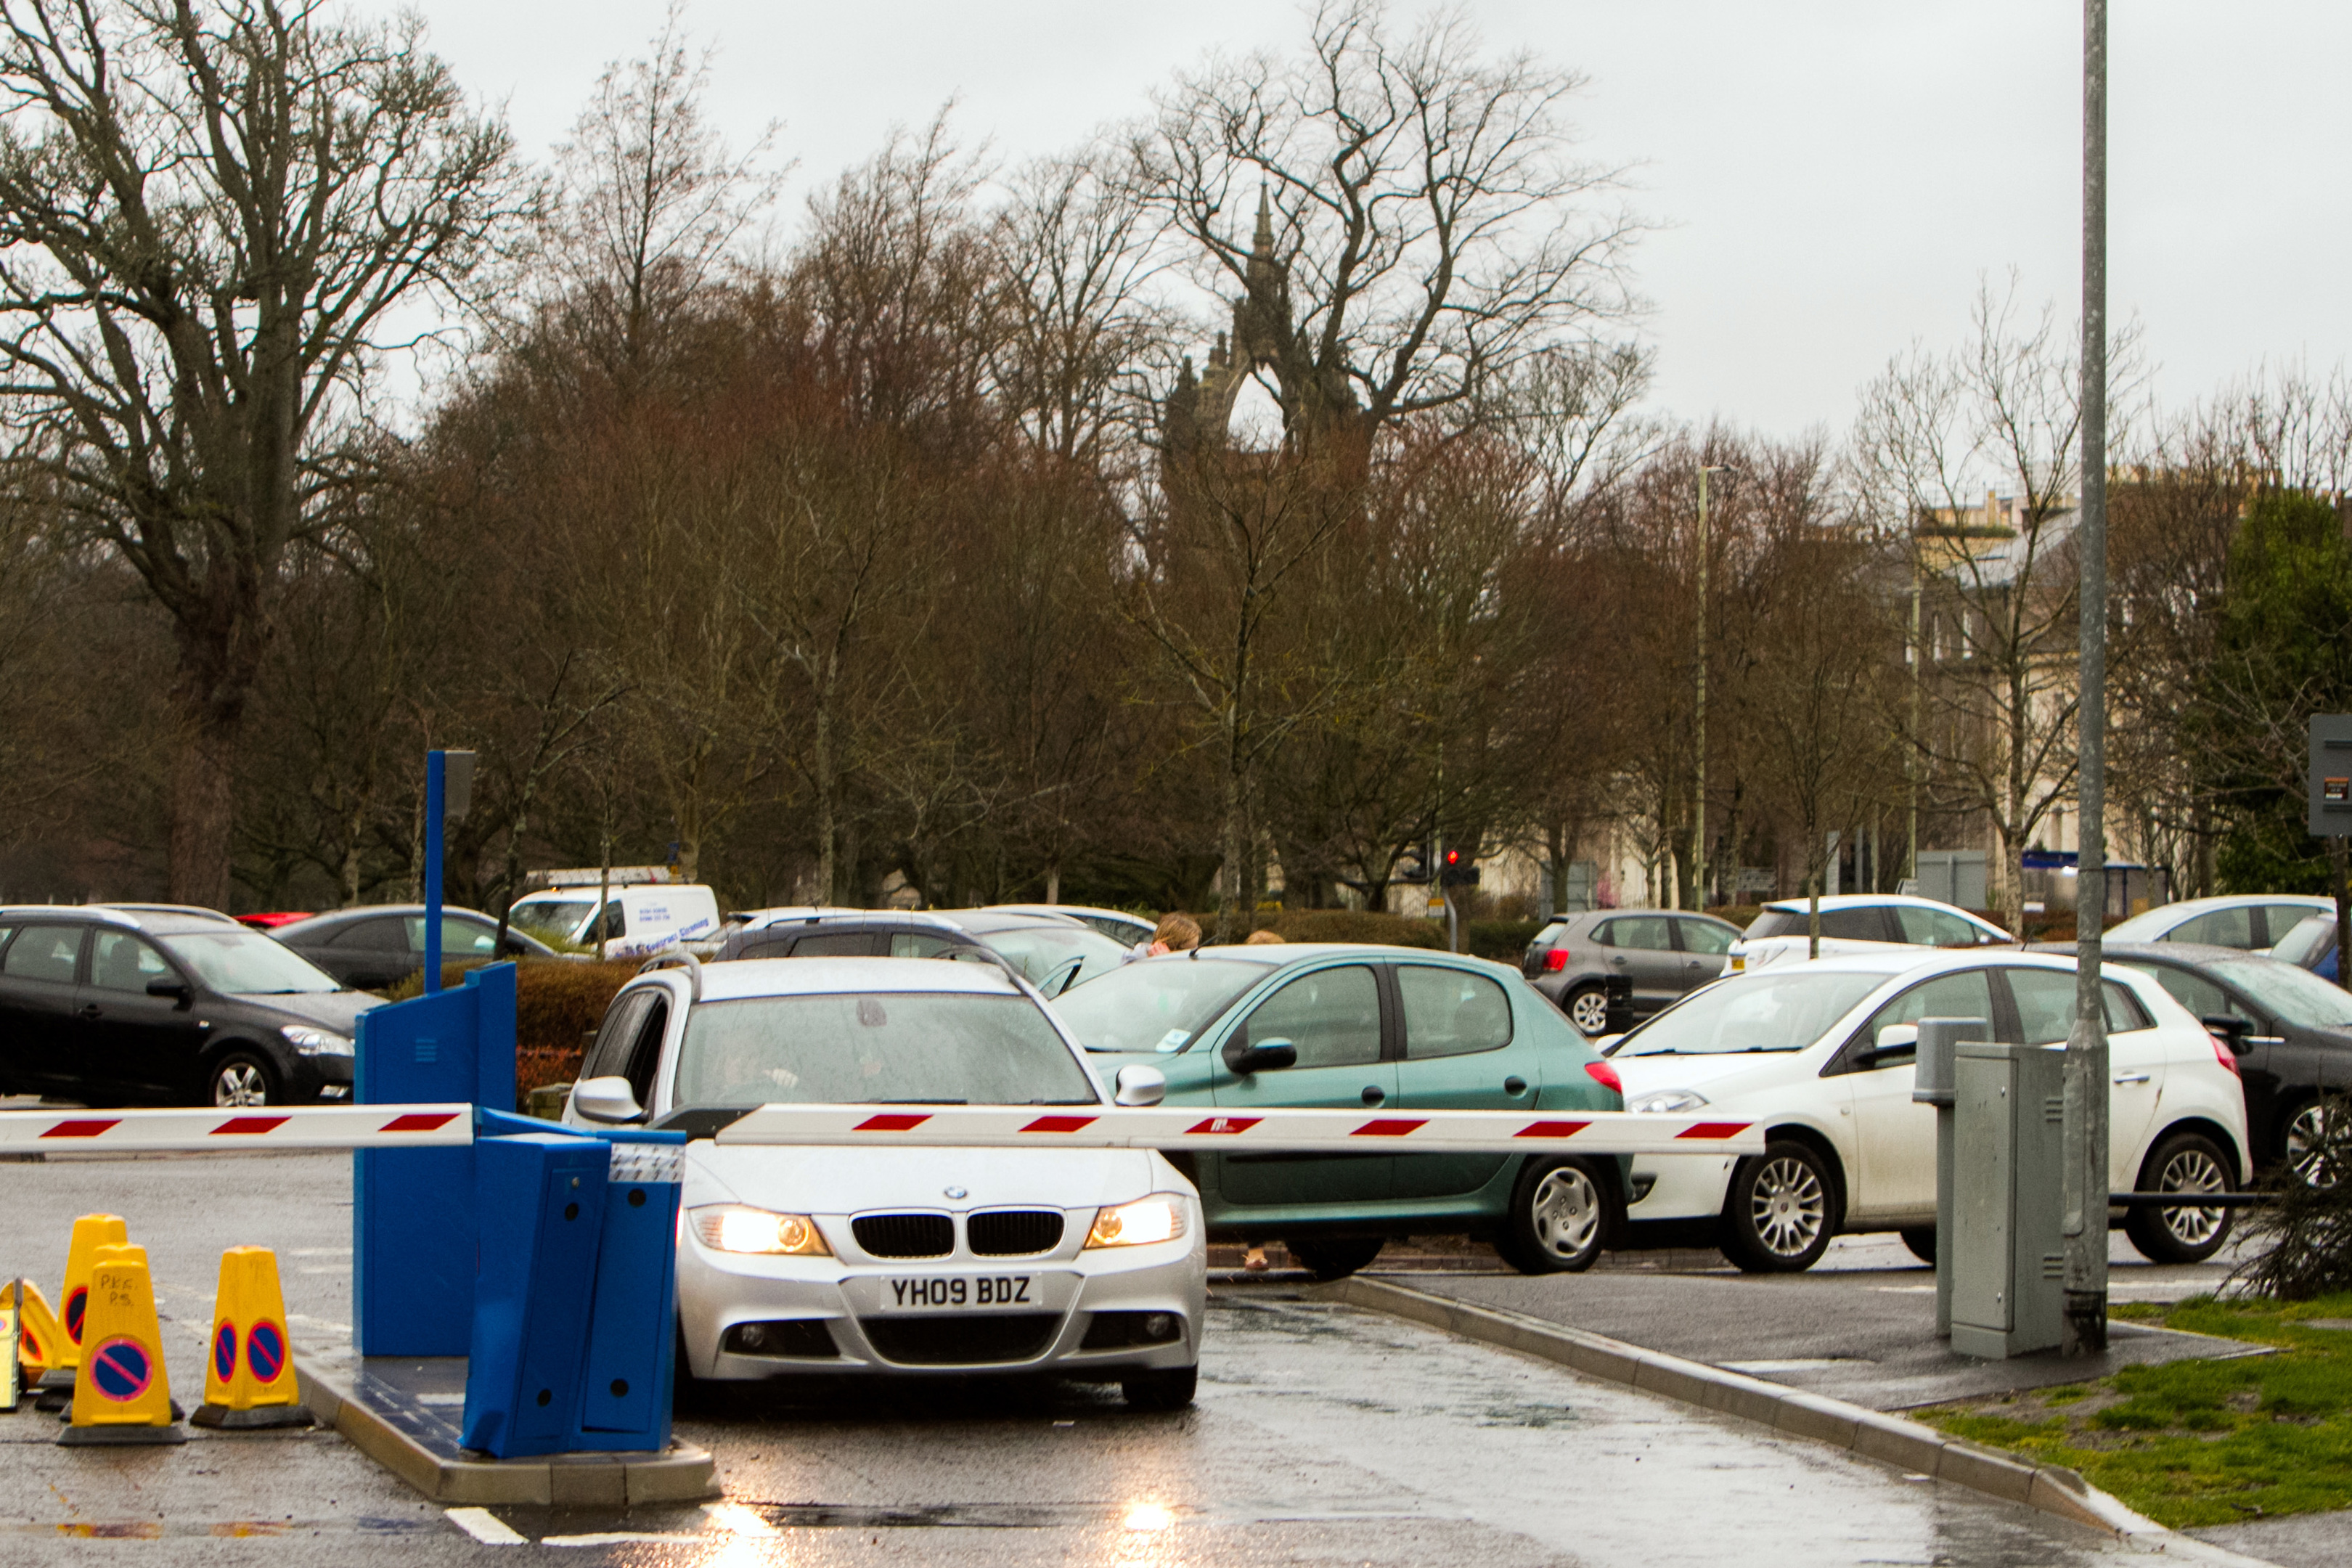 Last month it was announced that the barriers at the South Inch car park would stay down 24 hours a day